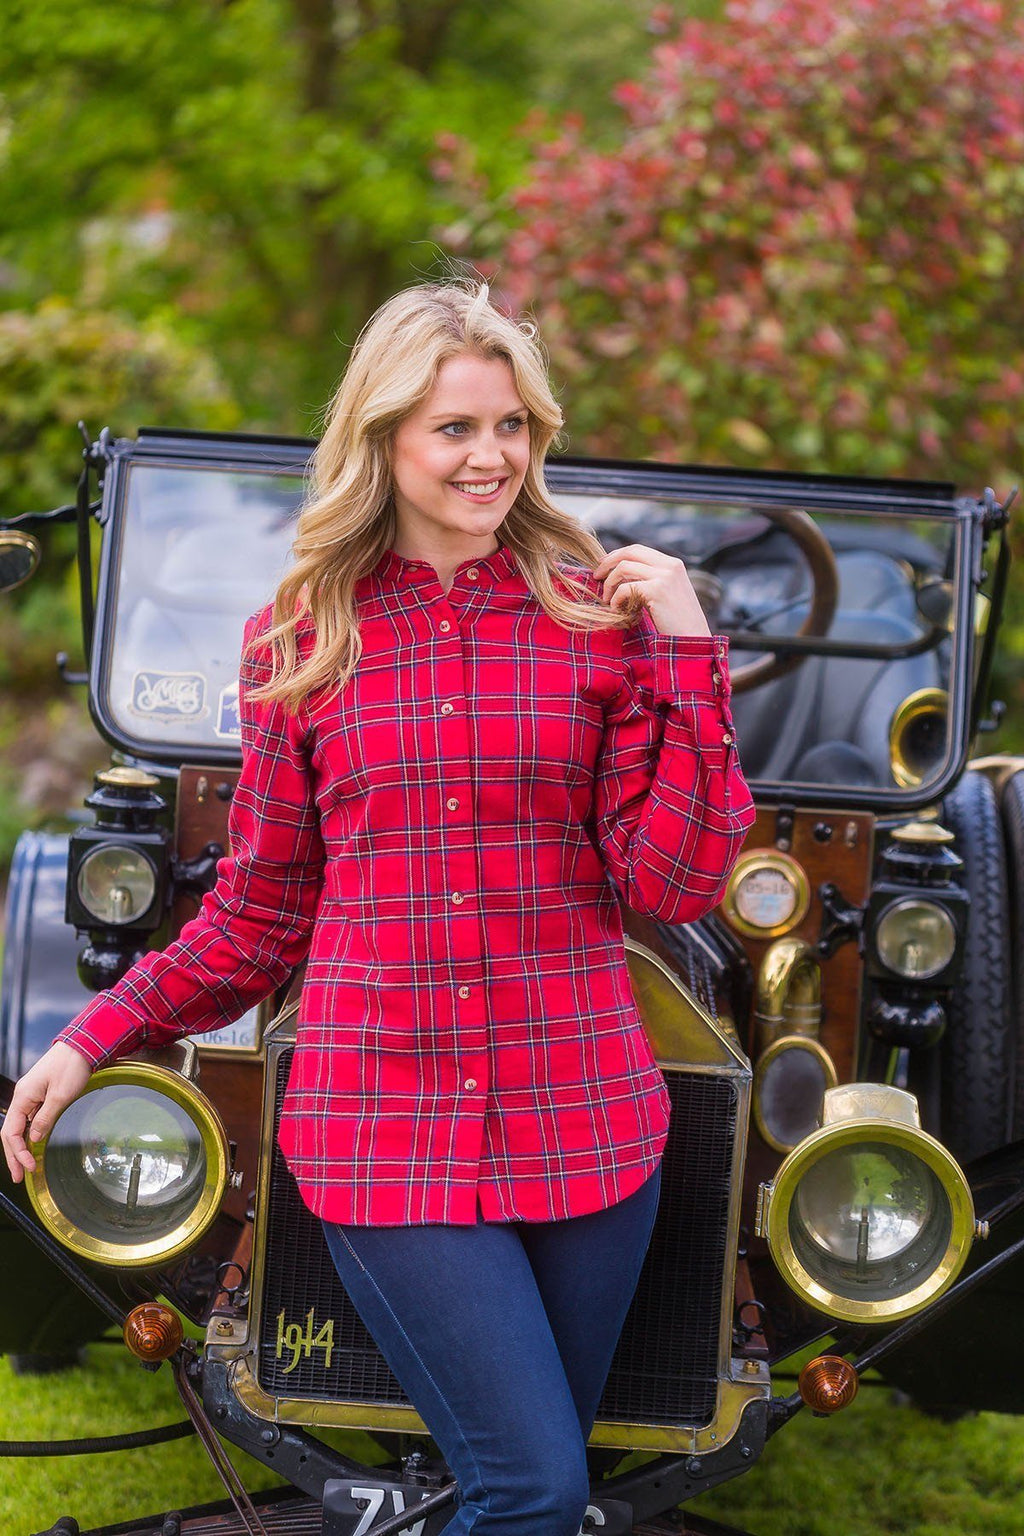 Grandfather Shirt Ladies Flannel Red Tartan - Royal Stewart (LV27) - Lee Valley Ireland - 1